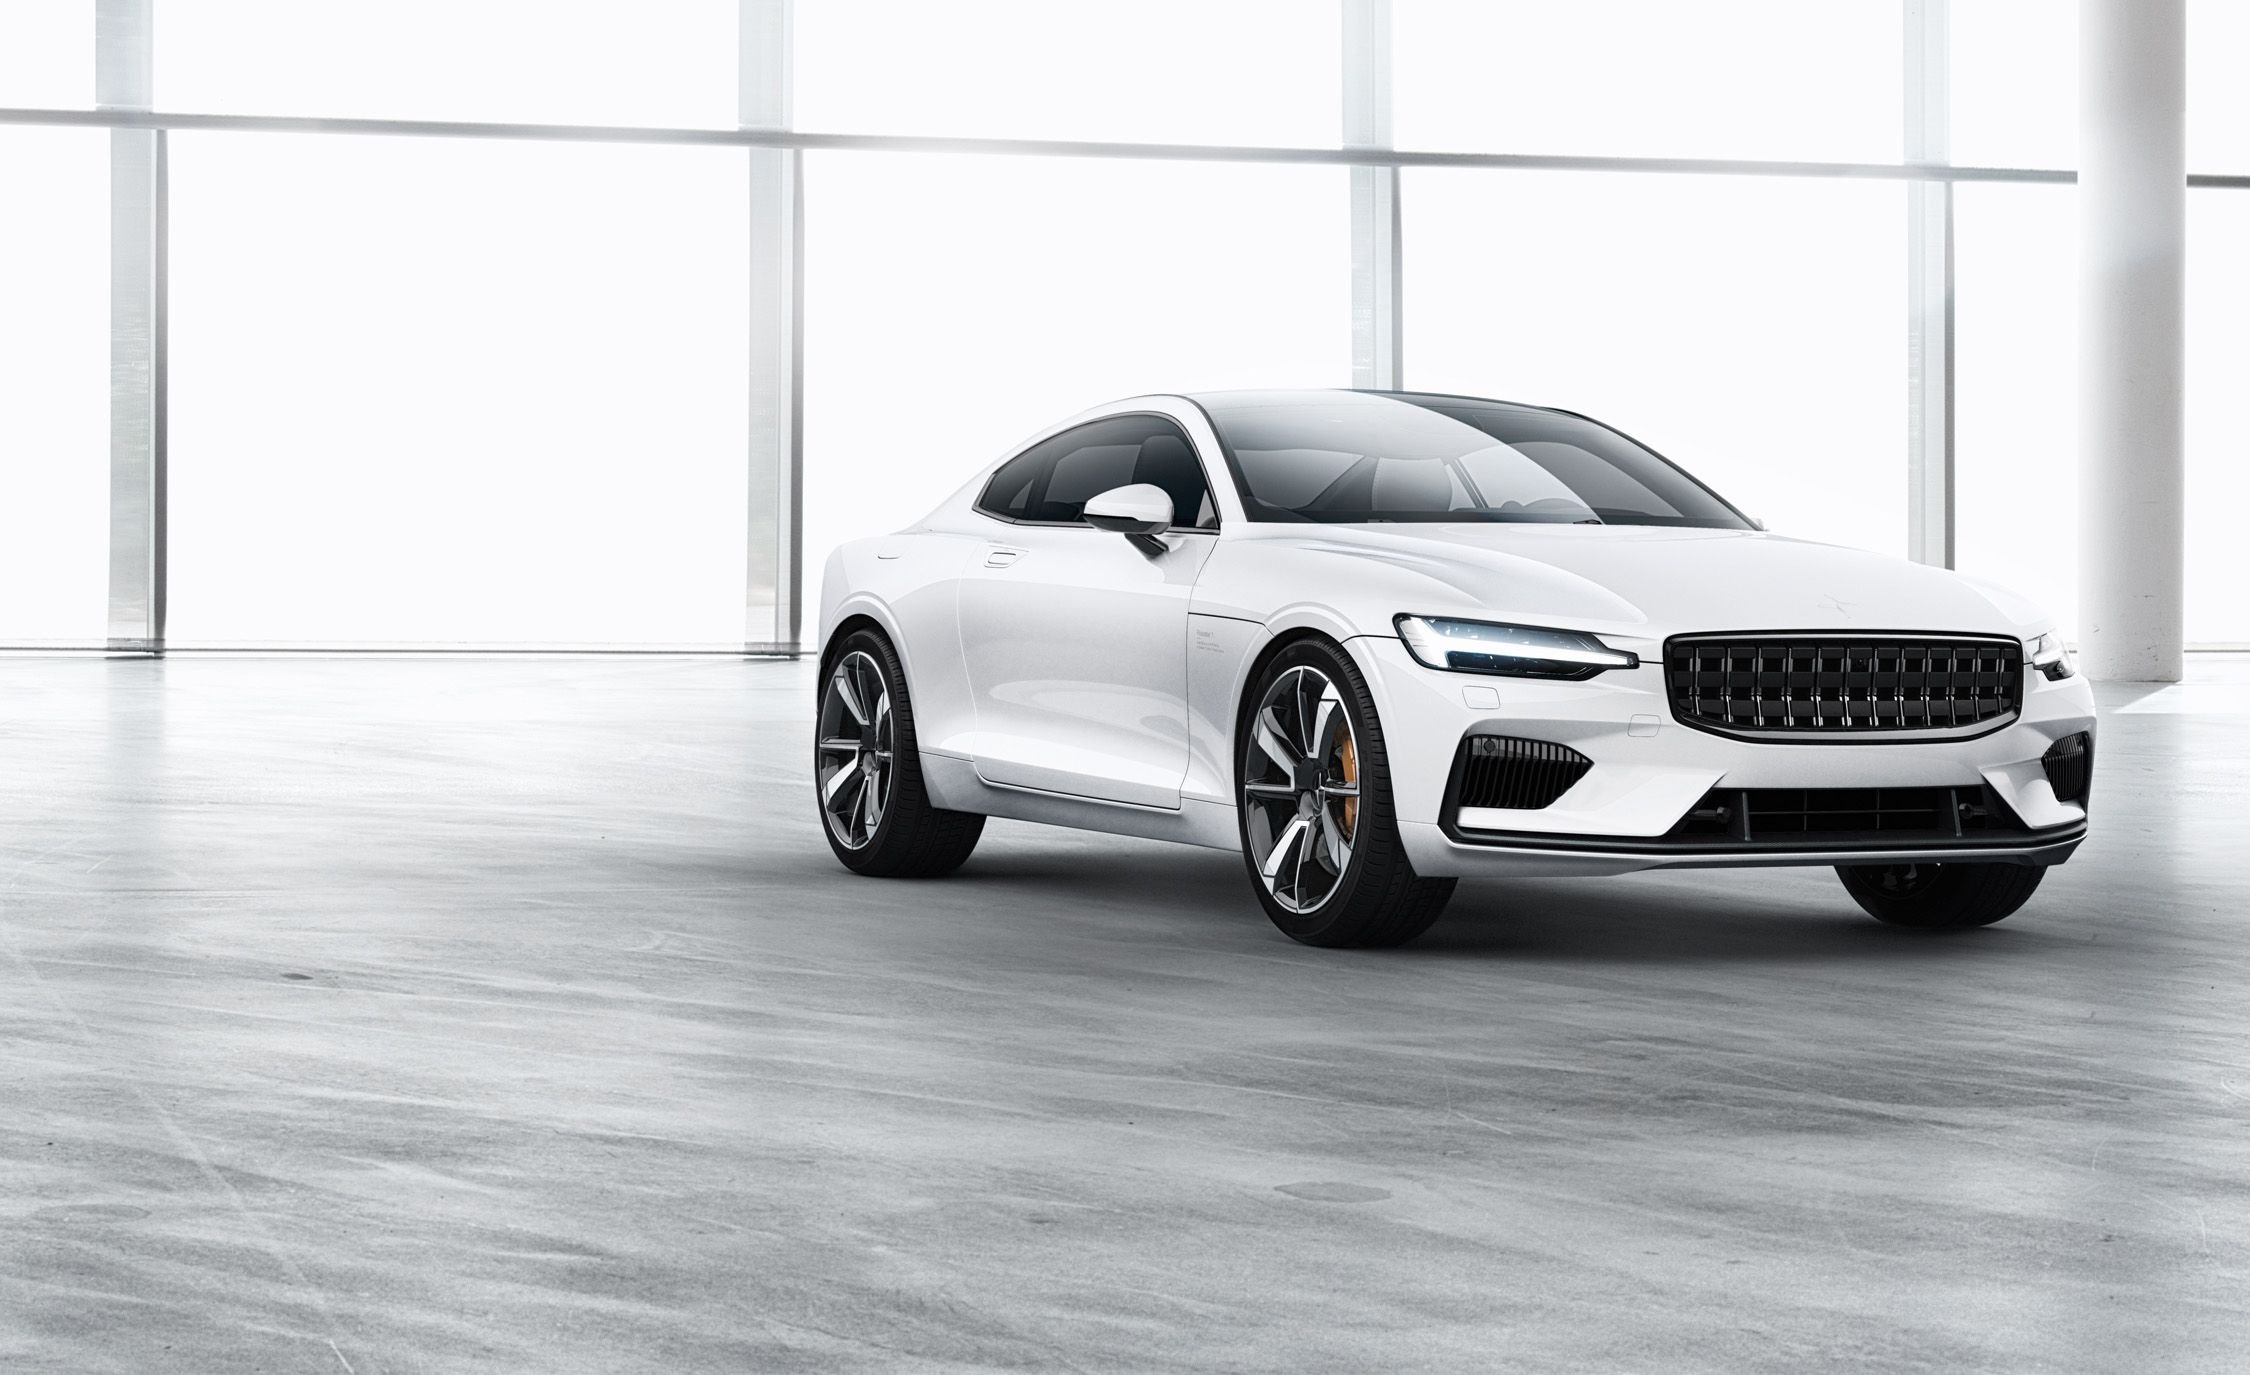 91 The Best 2020 Volvo S60 Polestar New Review